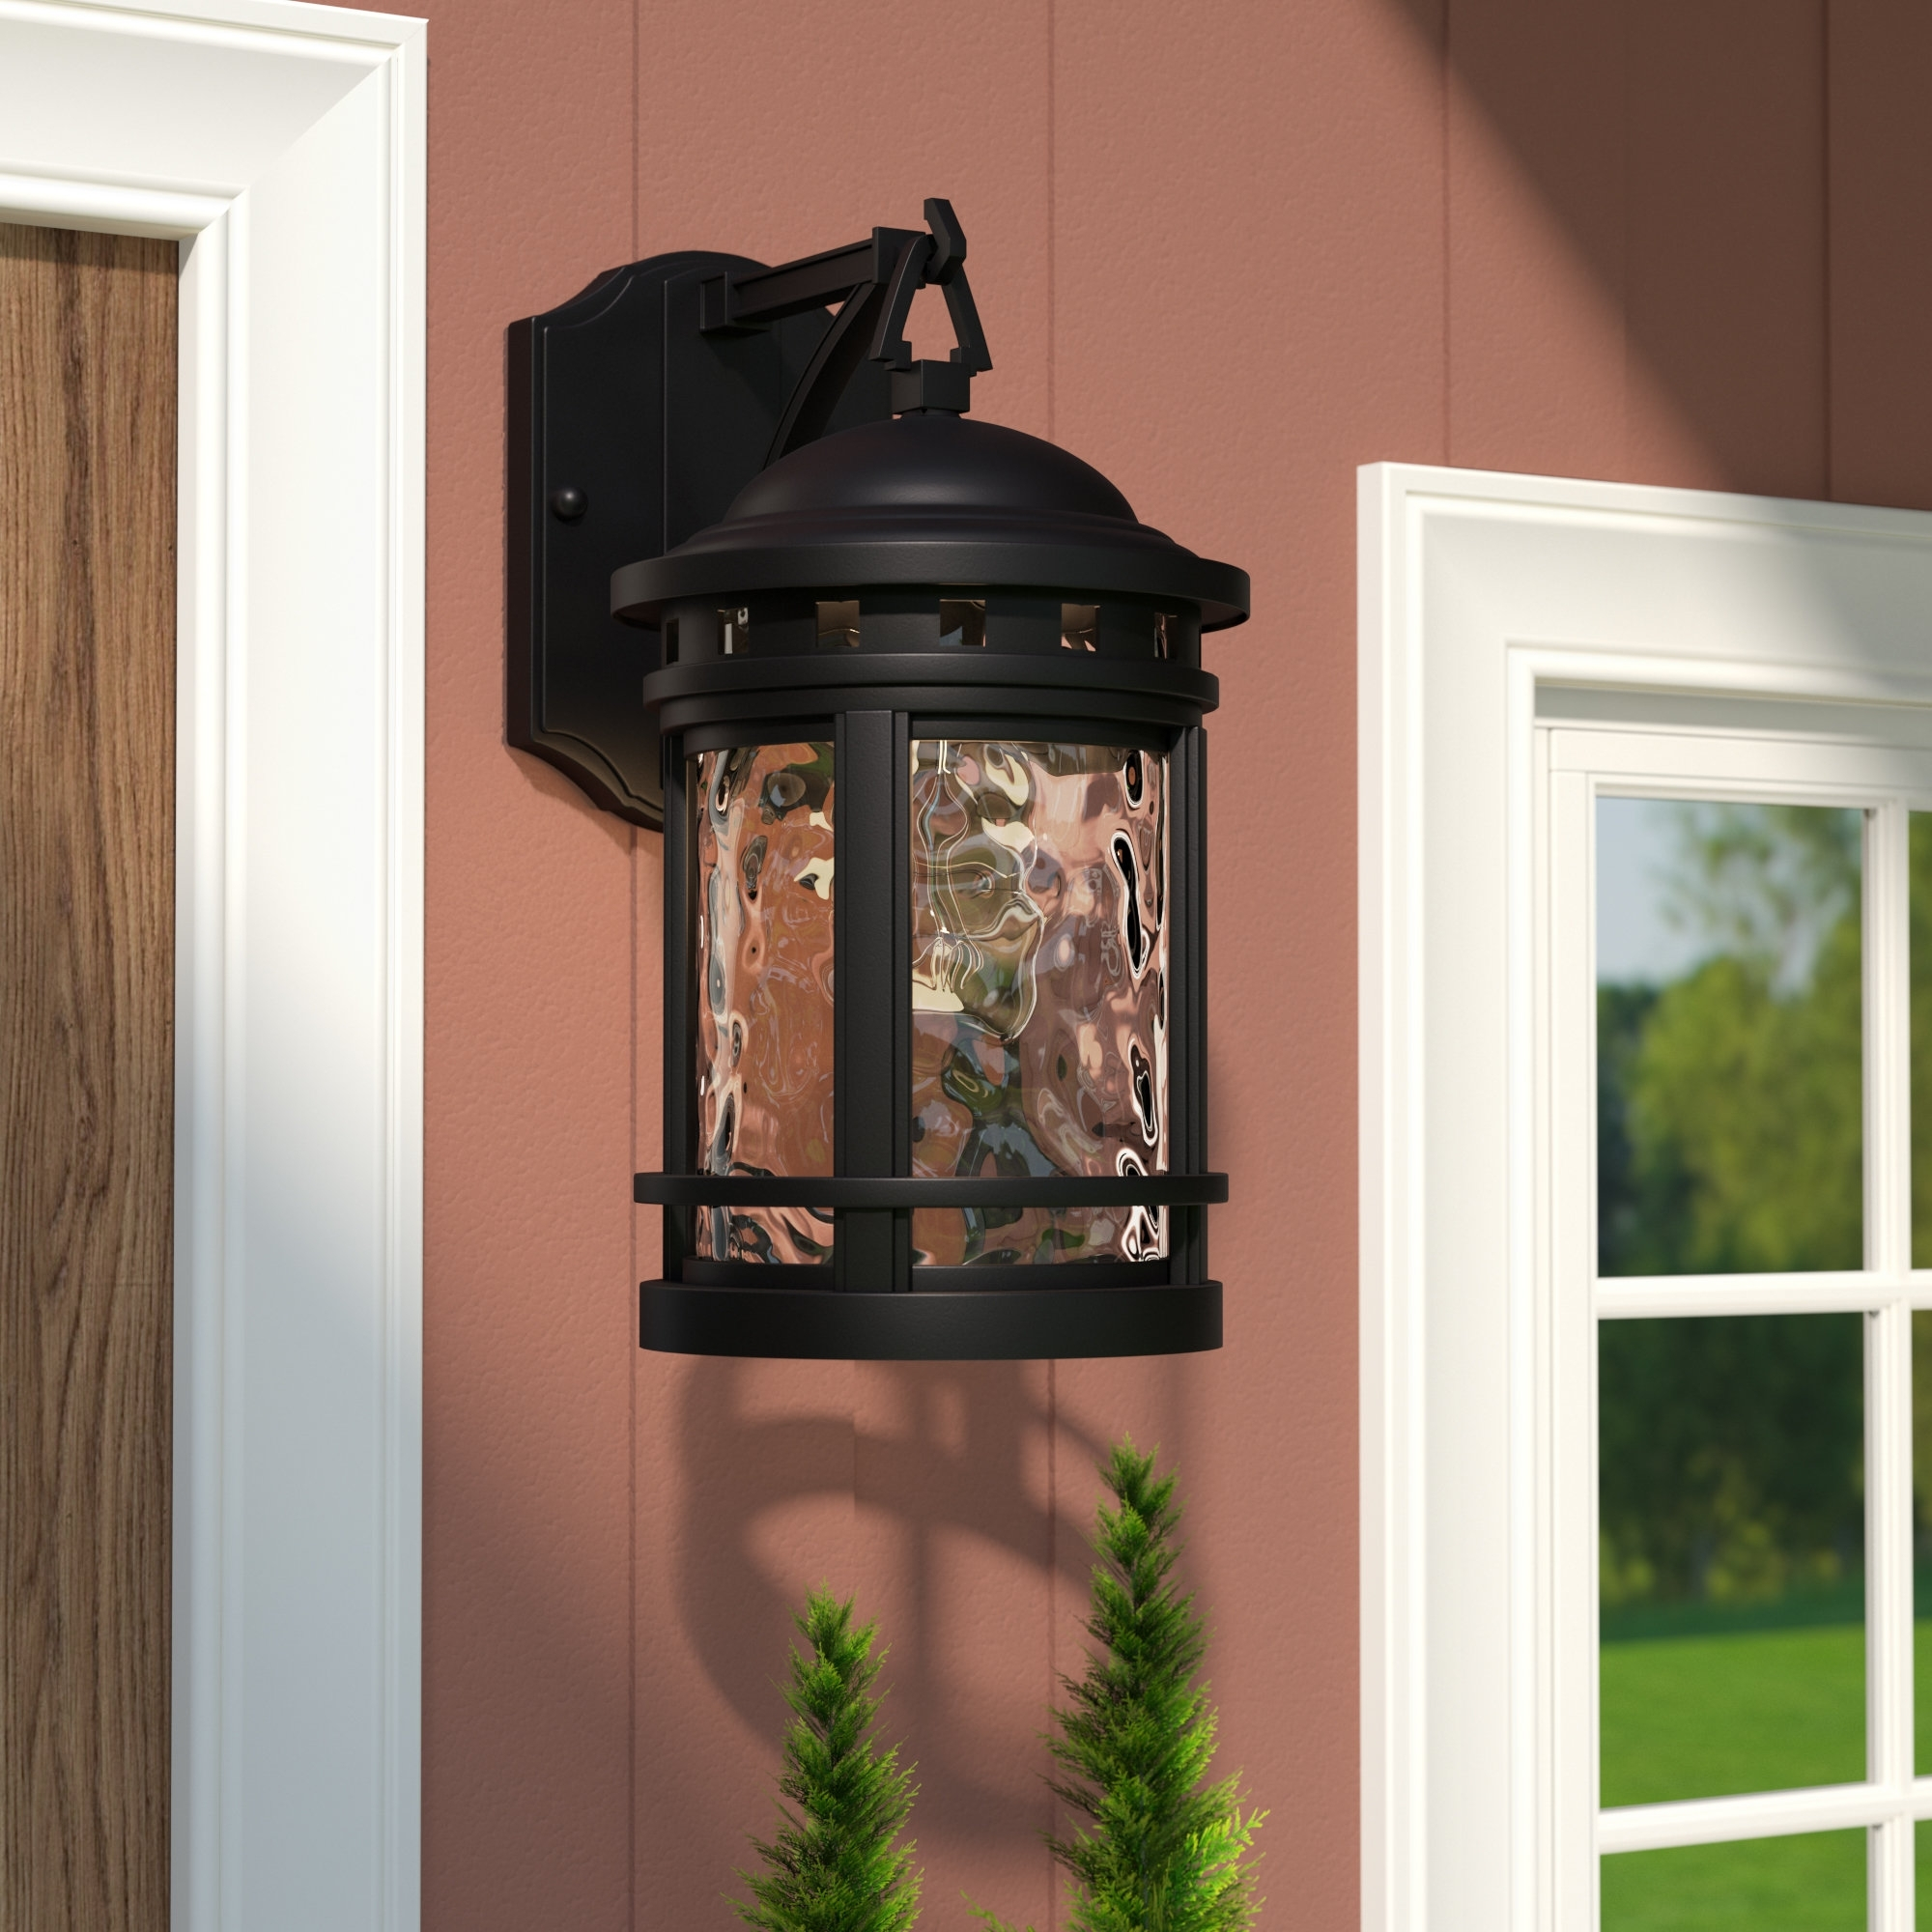 Loon Peak Ashberry 1 Light Outdoor Wall Lantern & Reviews | Wayfair With Regard To Outdoor Vinyl Lanterns (View 10 of 20)